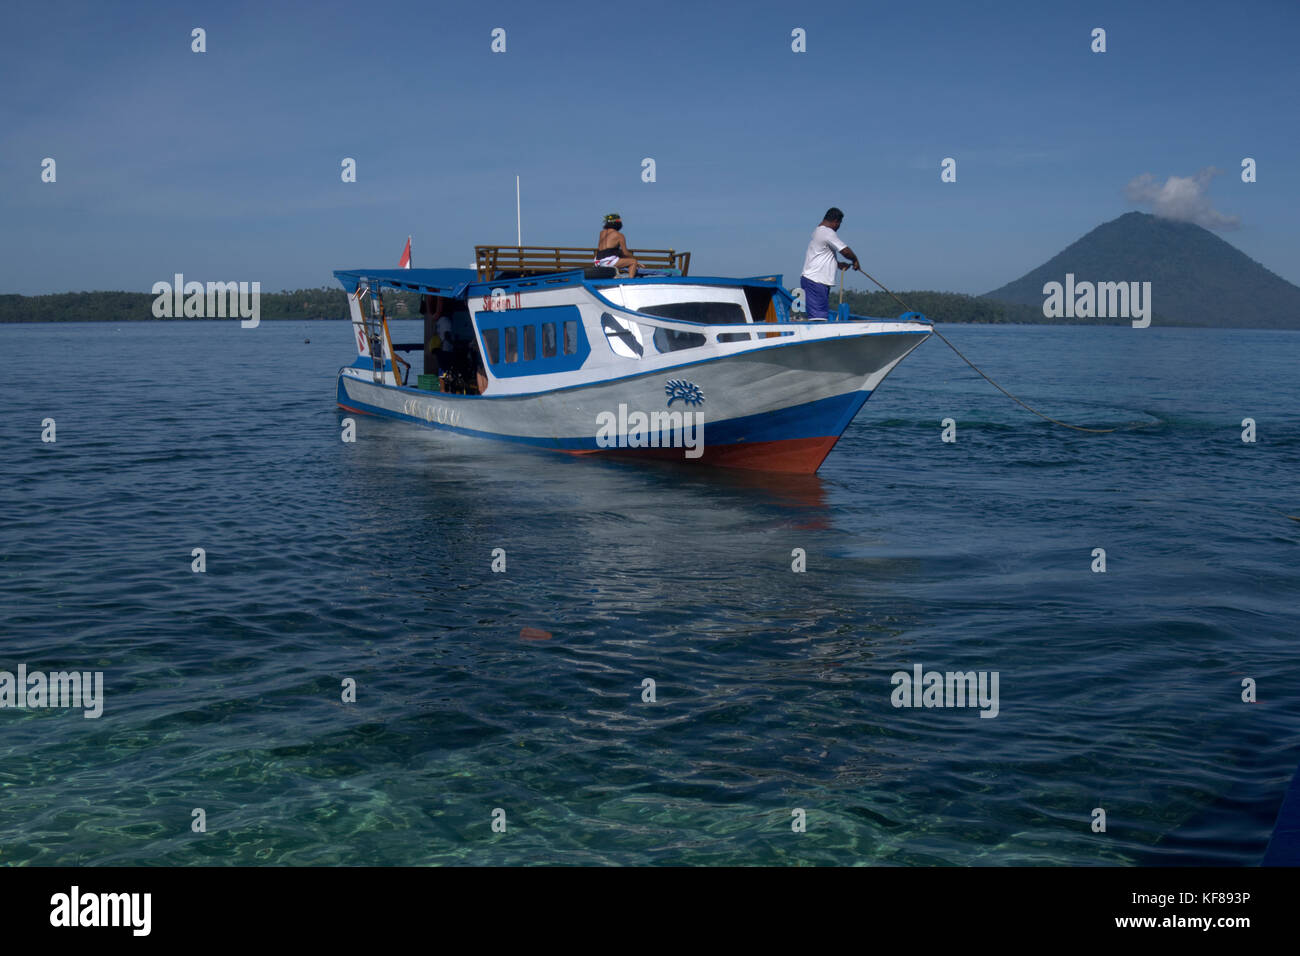 Dive boat in the Bunaken national marine park in North Sulawesi, Indonesia - Stock Image